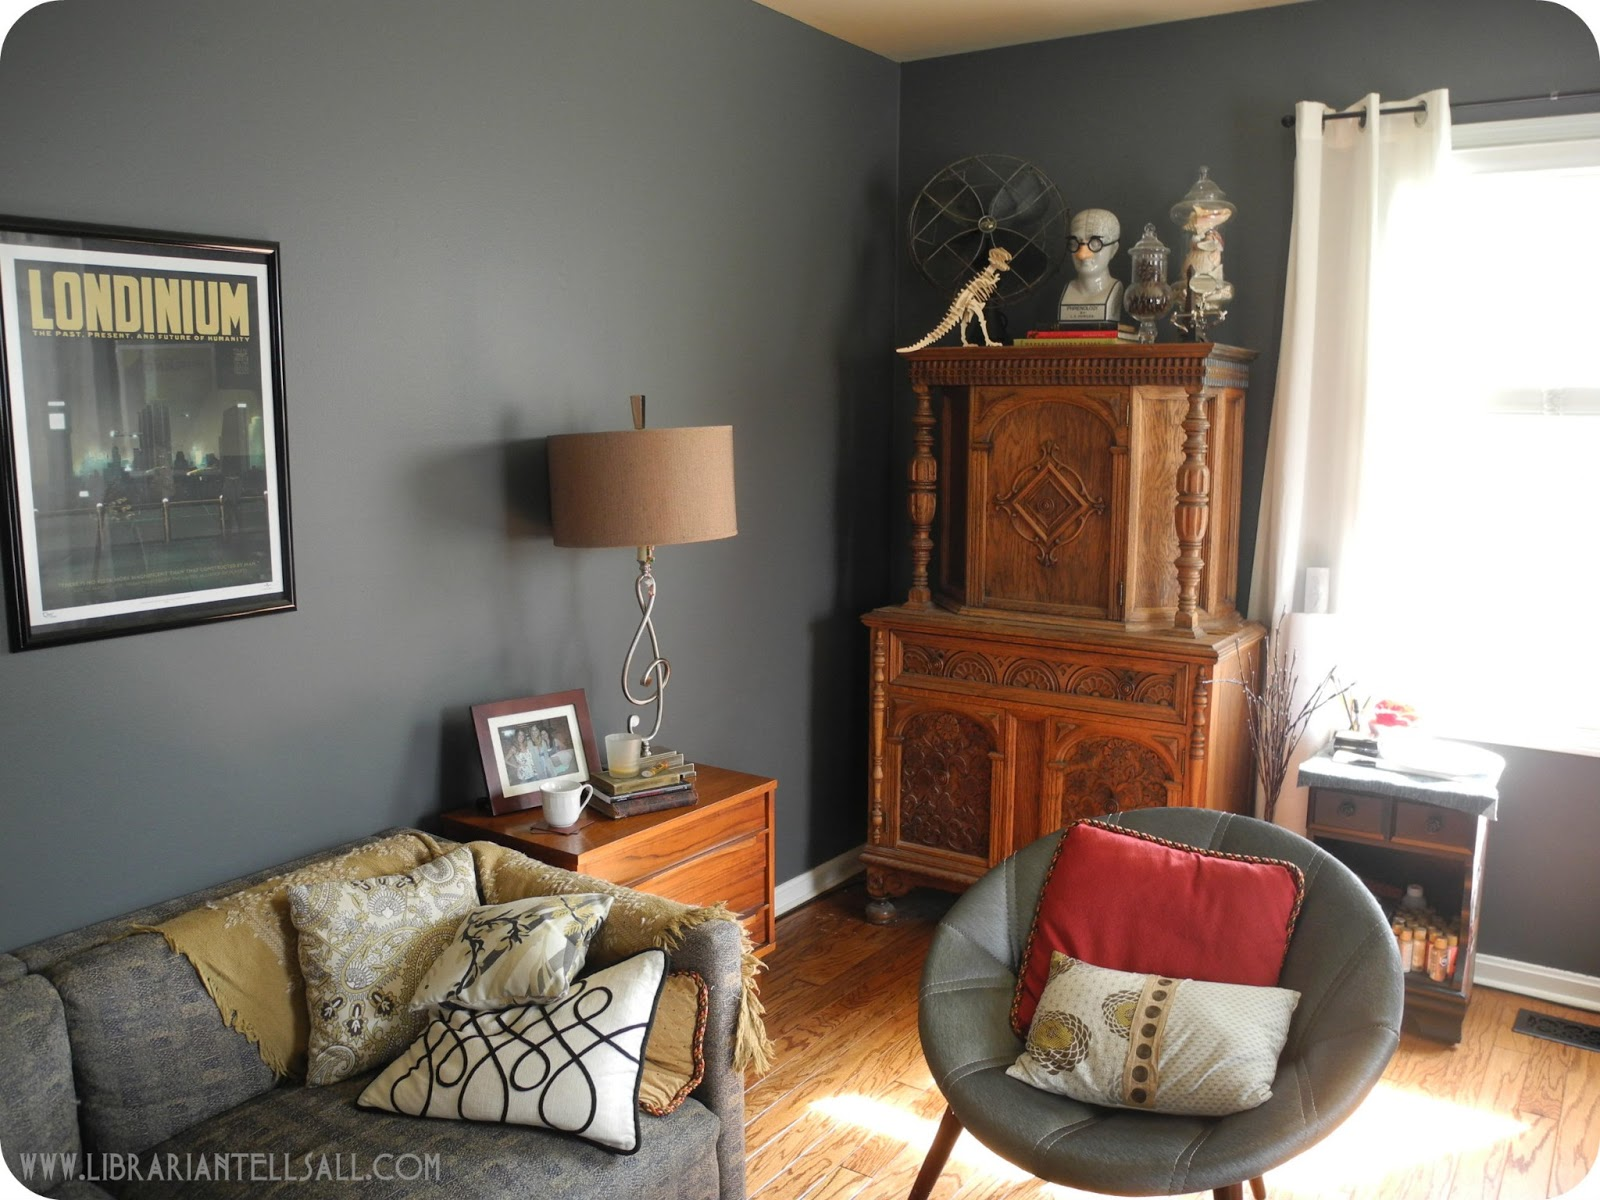 librarian tells all: My Happy Room: Mid Century Furniture, Gray ...